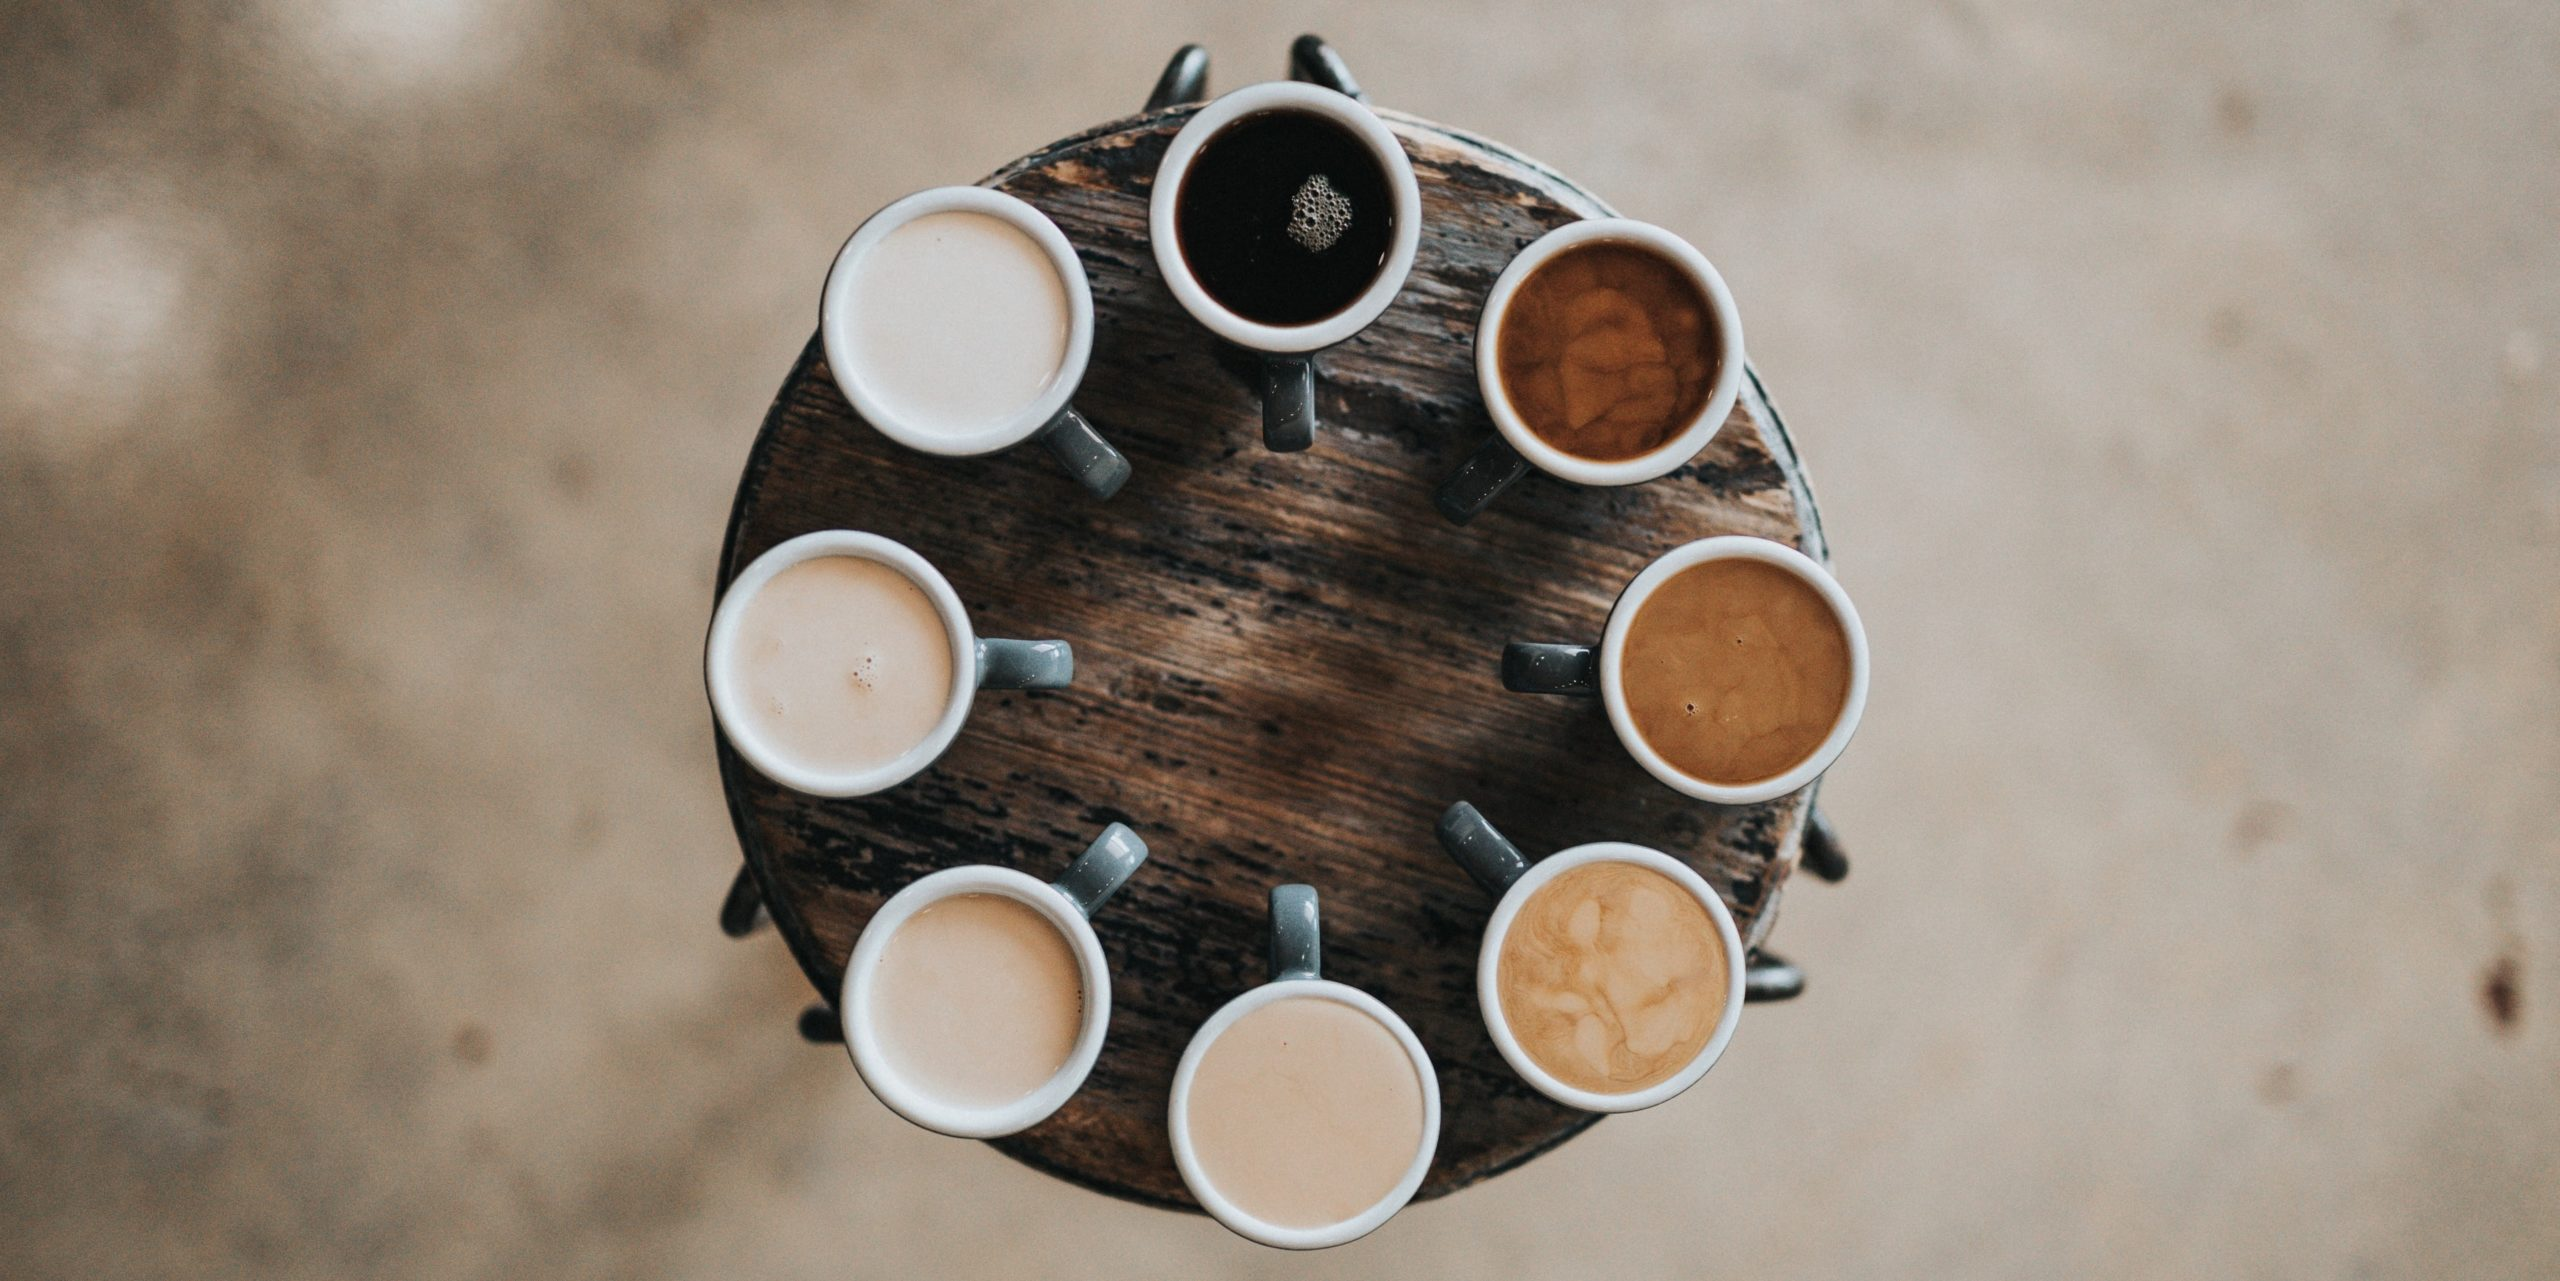 Tastes are different and so are people (Photo: Nathan Dumlao on Unsplash)